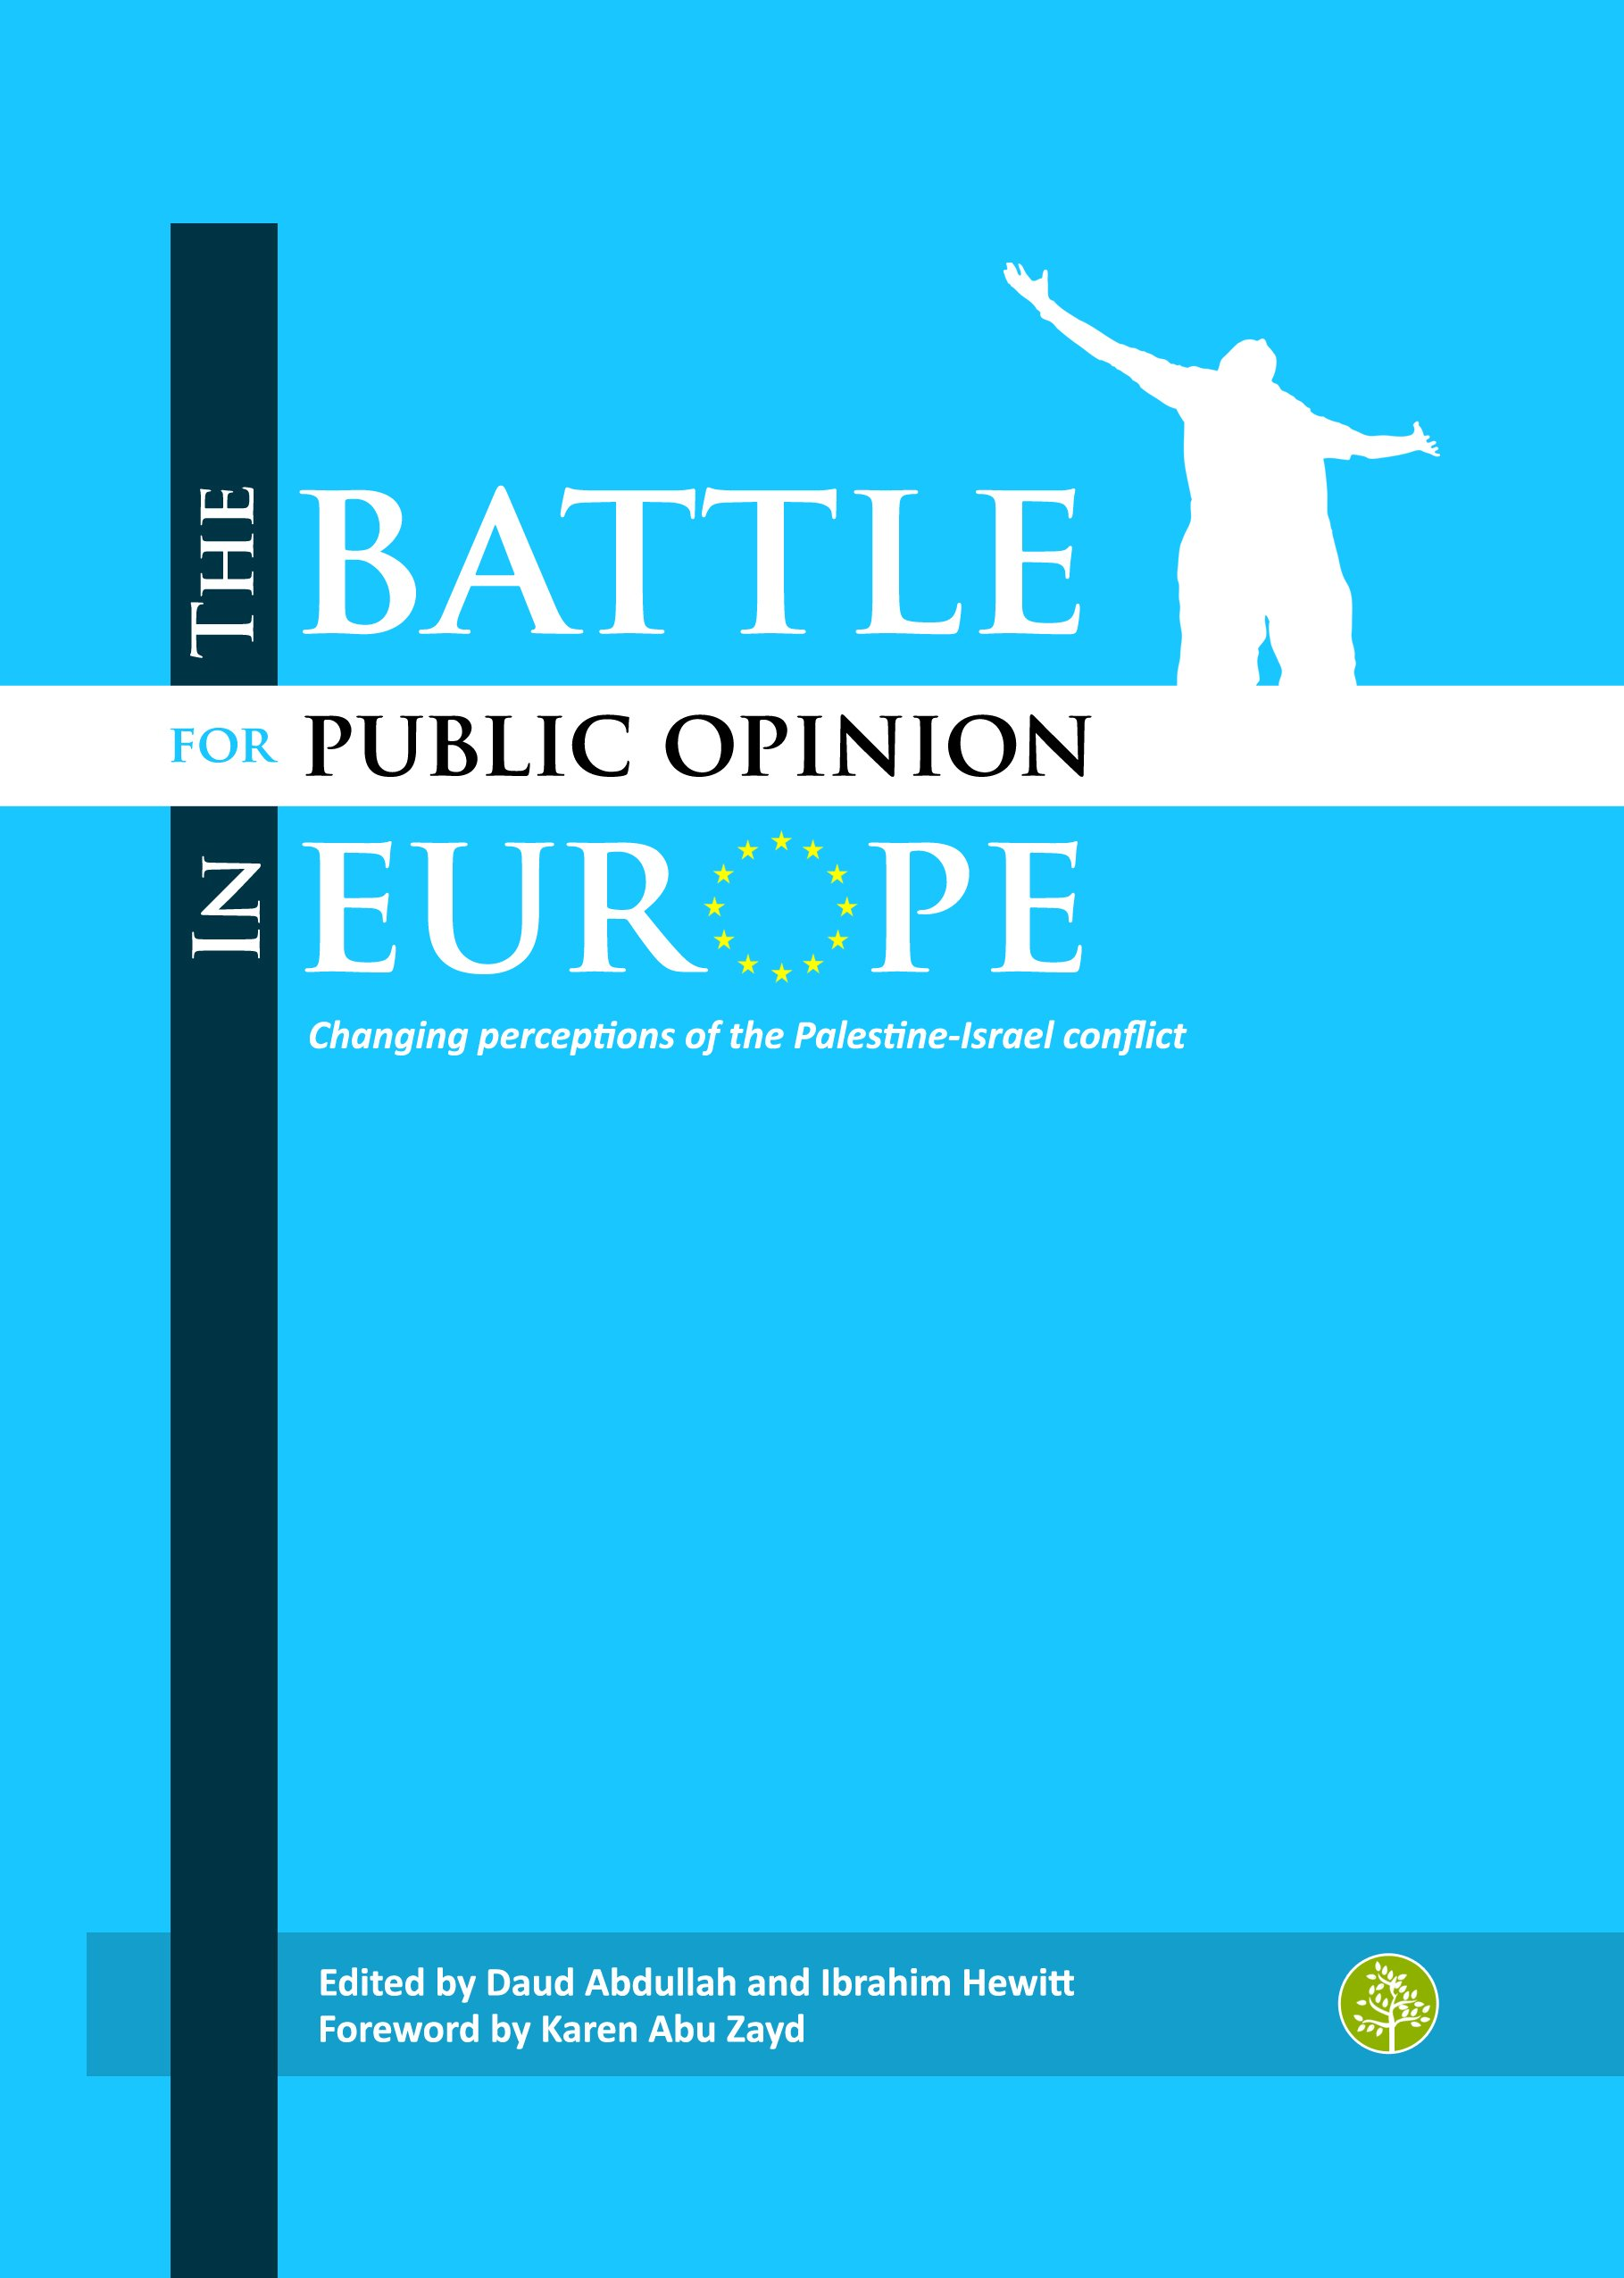 Book Launch: The Battle for Public Opinion in Europe